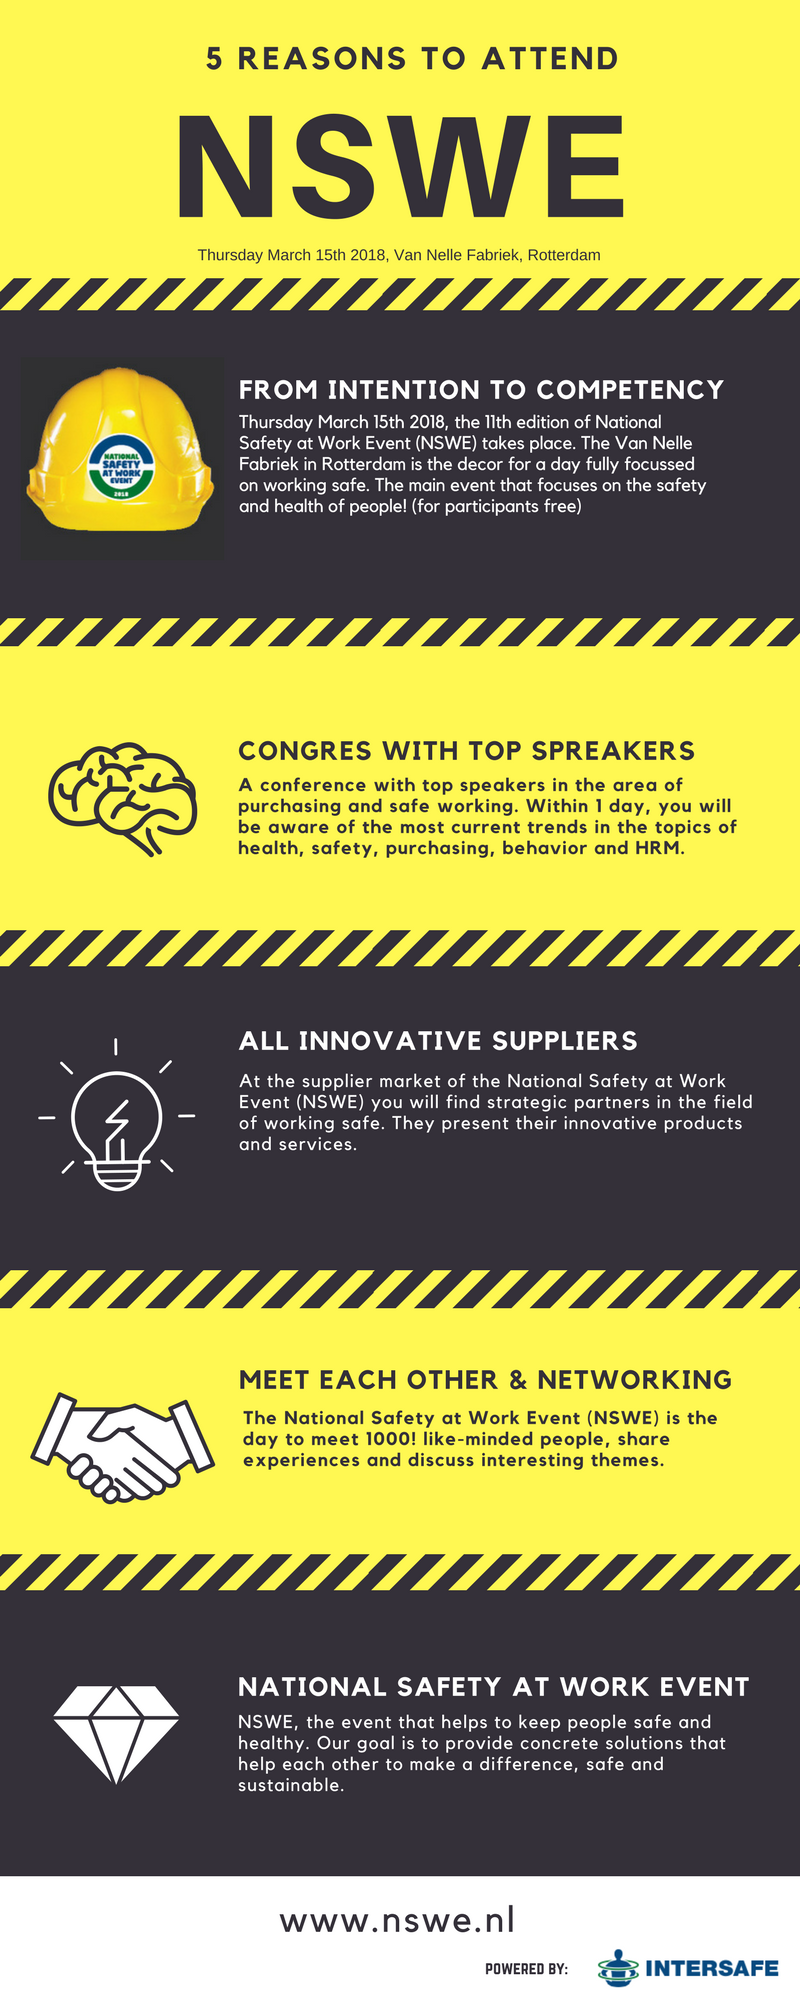 5 reasons to attend NSWE